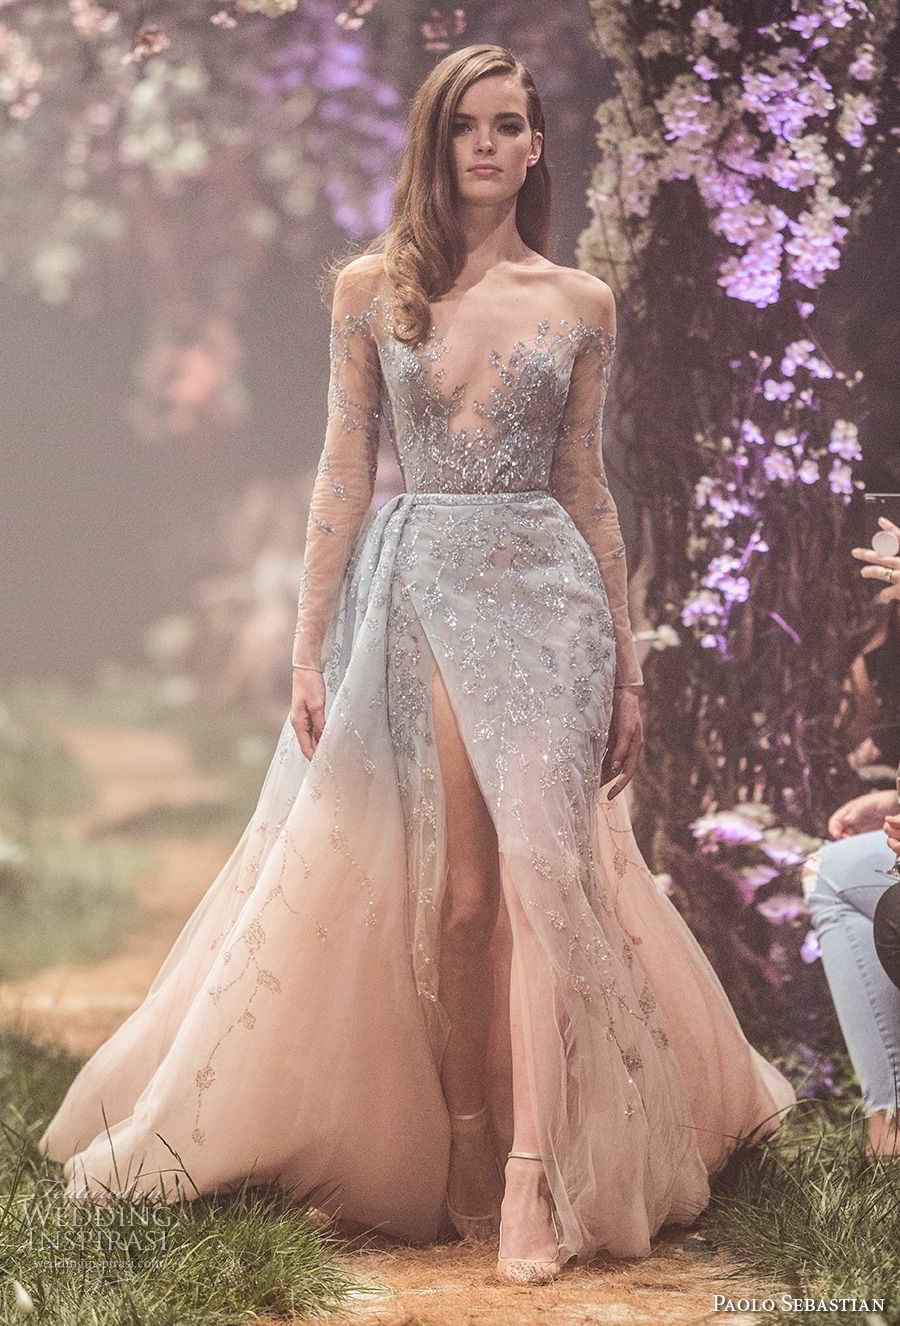 Paolo sebastian spring 2018 couture collection once Wedding dress themes 2018